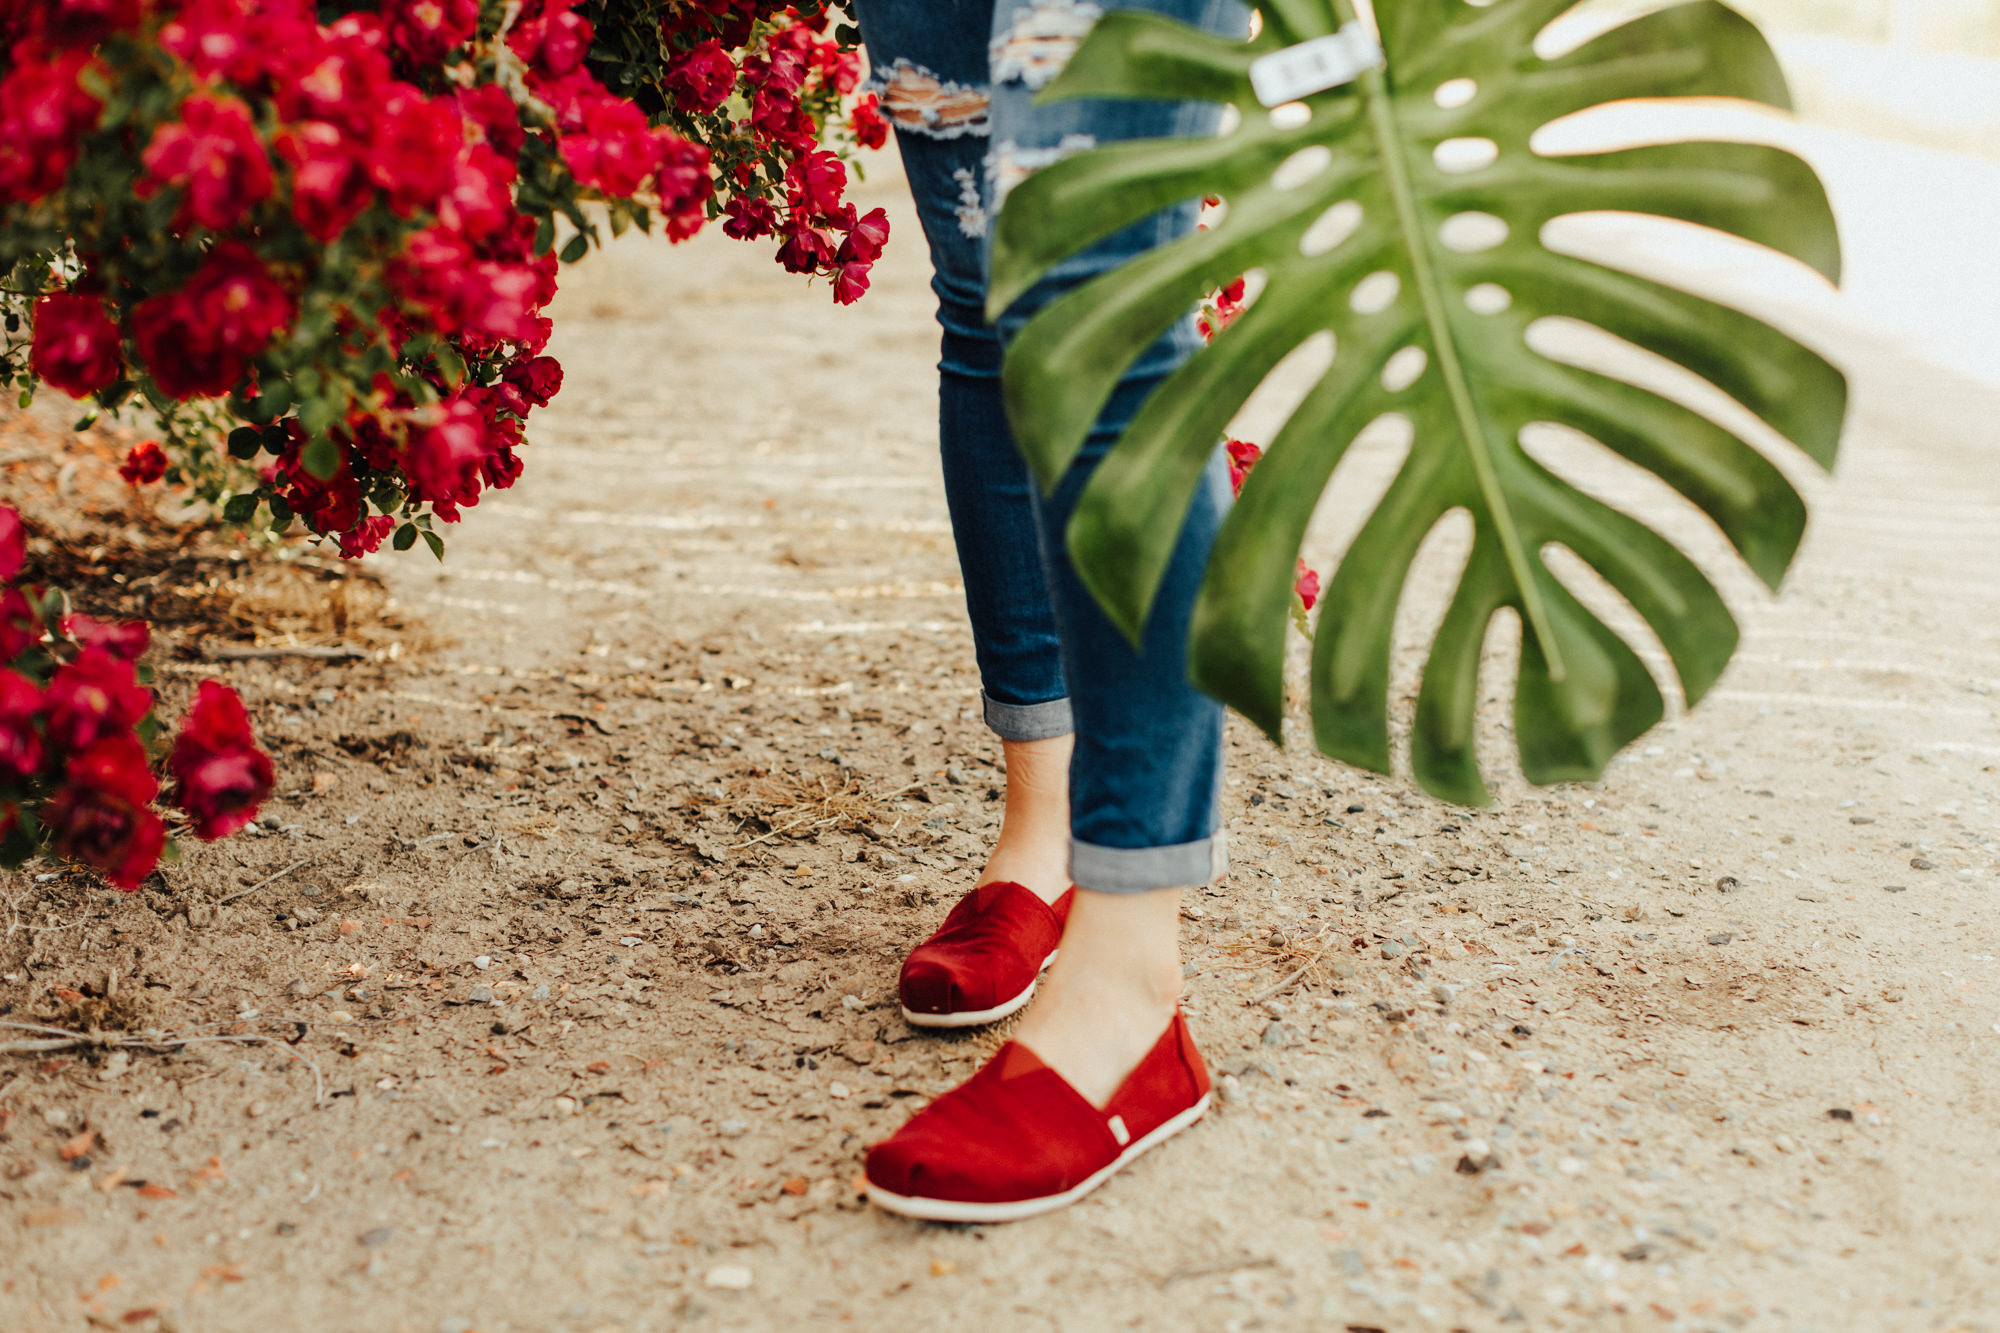 Photo of red Toms shoes with a green monstera leaf